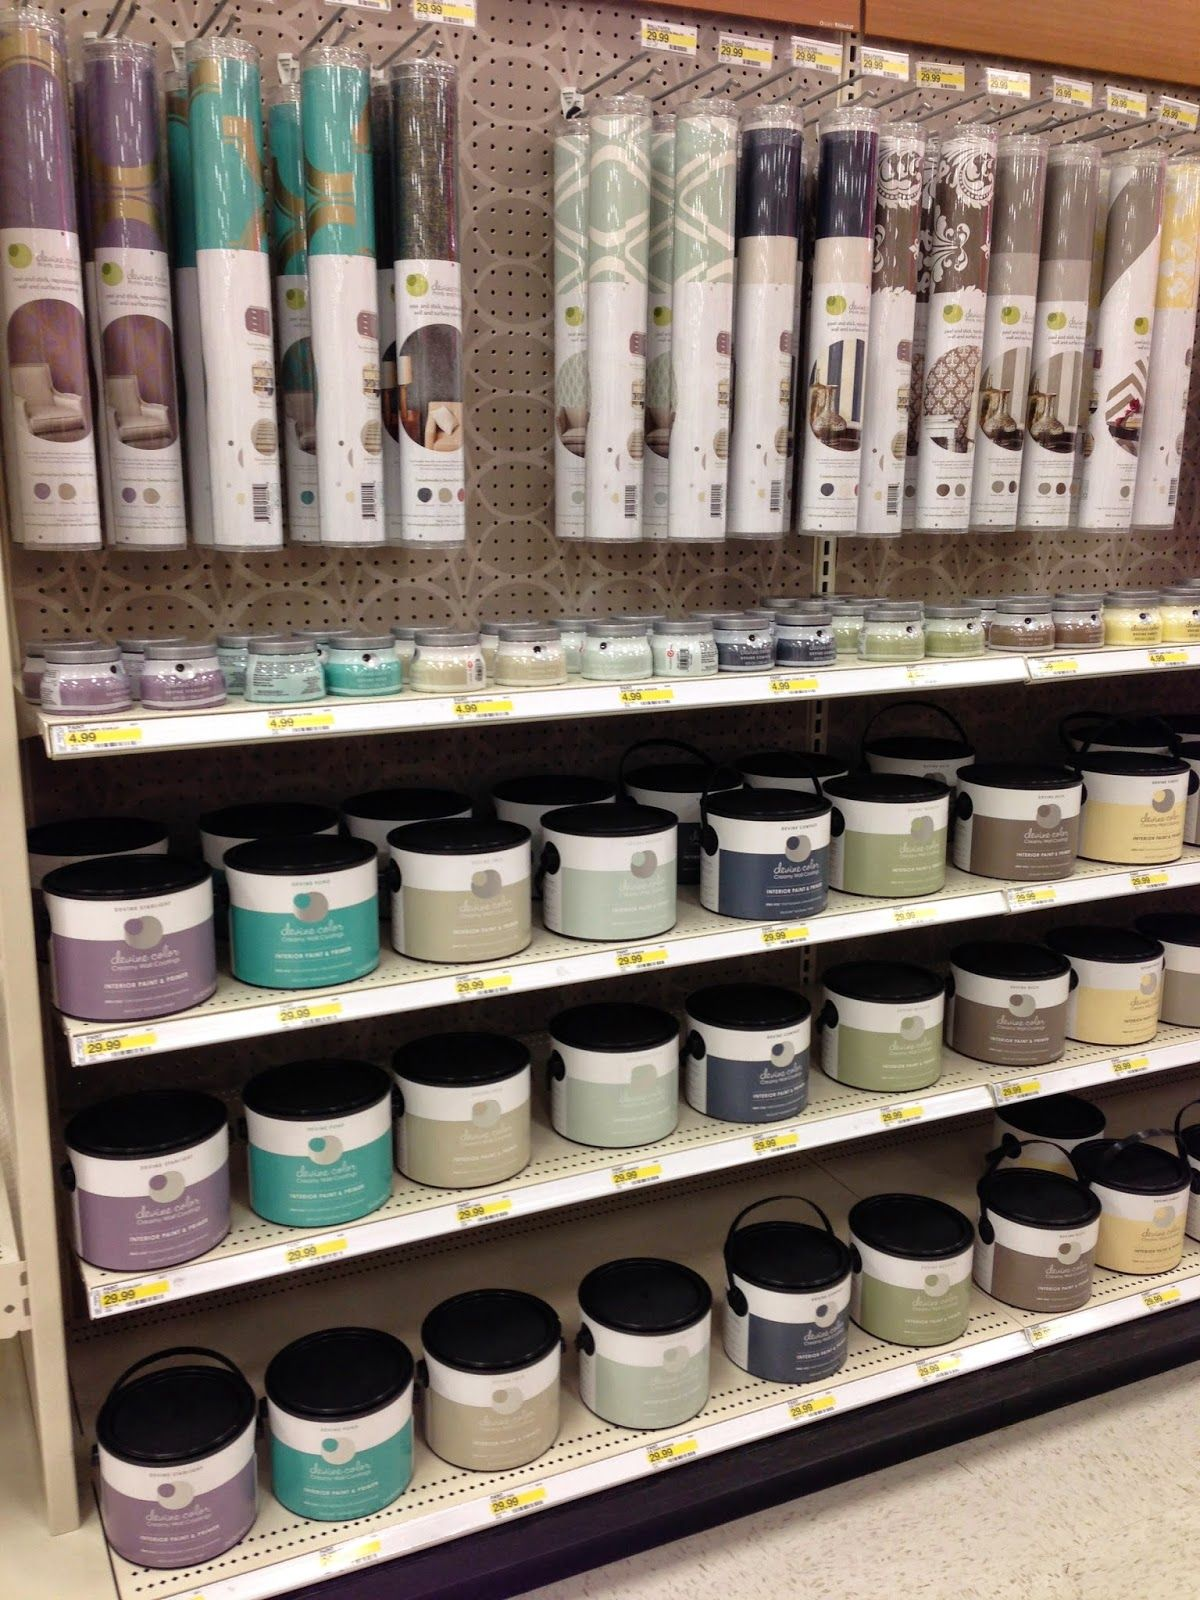 Target; removable wallpaper | Home Happy | Home decor, Target home decor, Home